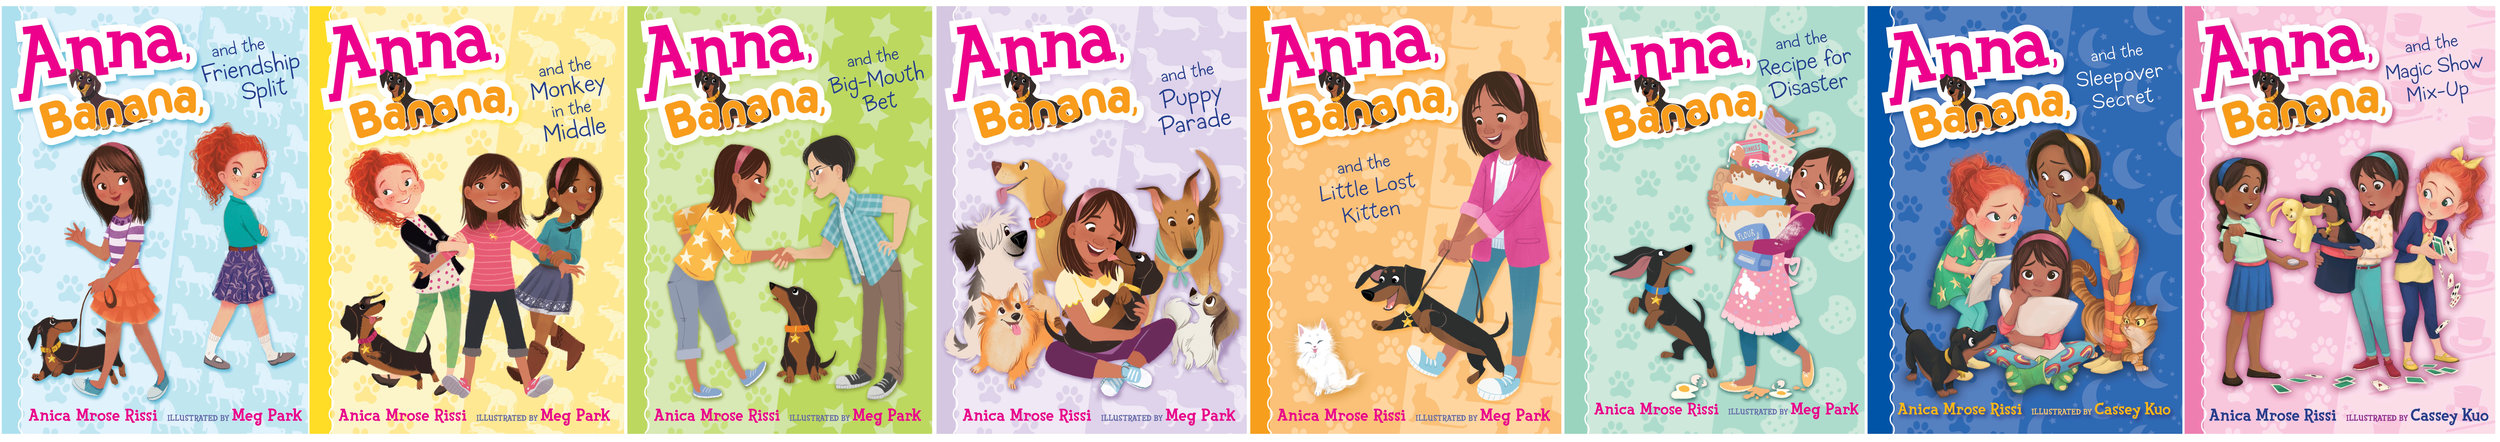 Anna, Banana series book covers.jpg